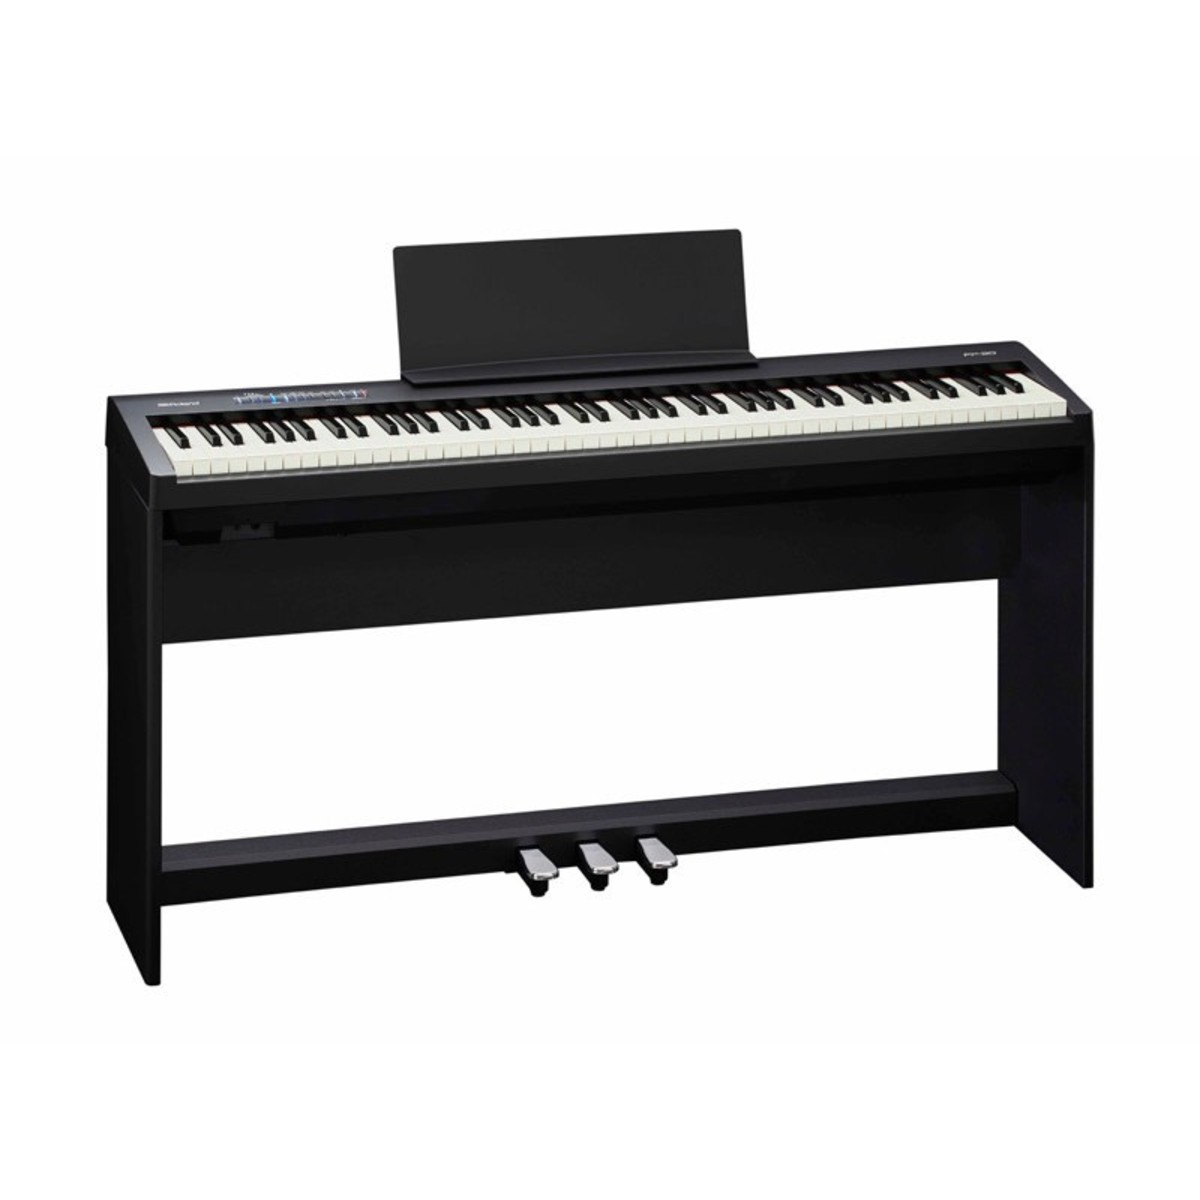 roland fp 30 digital piano with stand and pedals black at gear4music. Black Bedroom Furniture Sets. Home Design Ideas